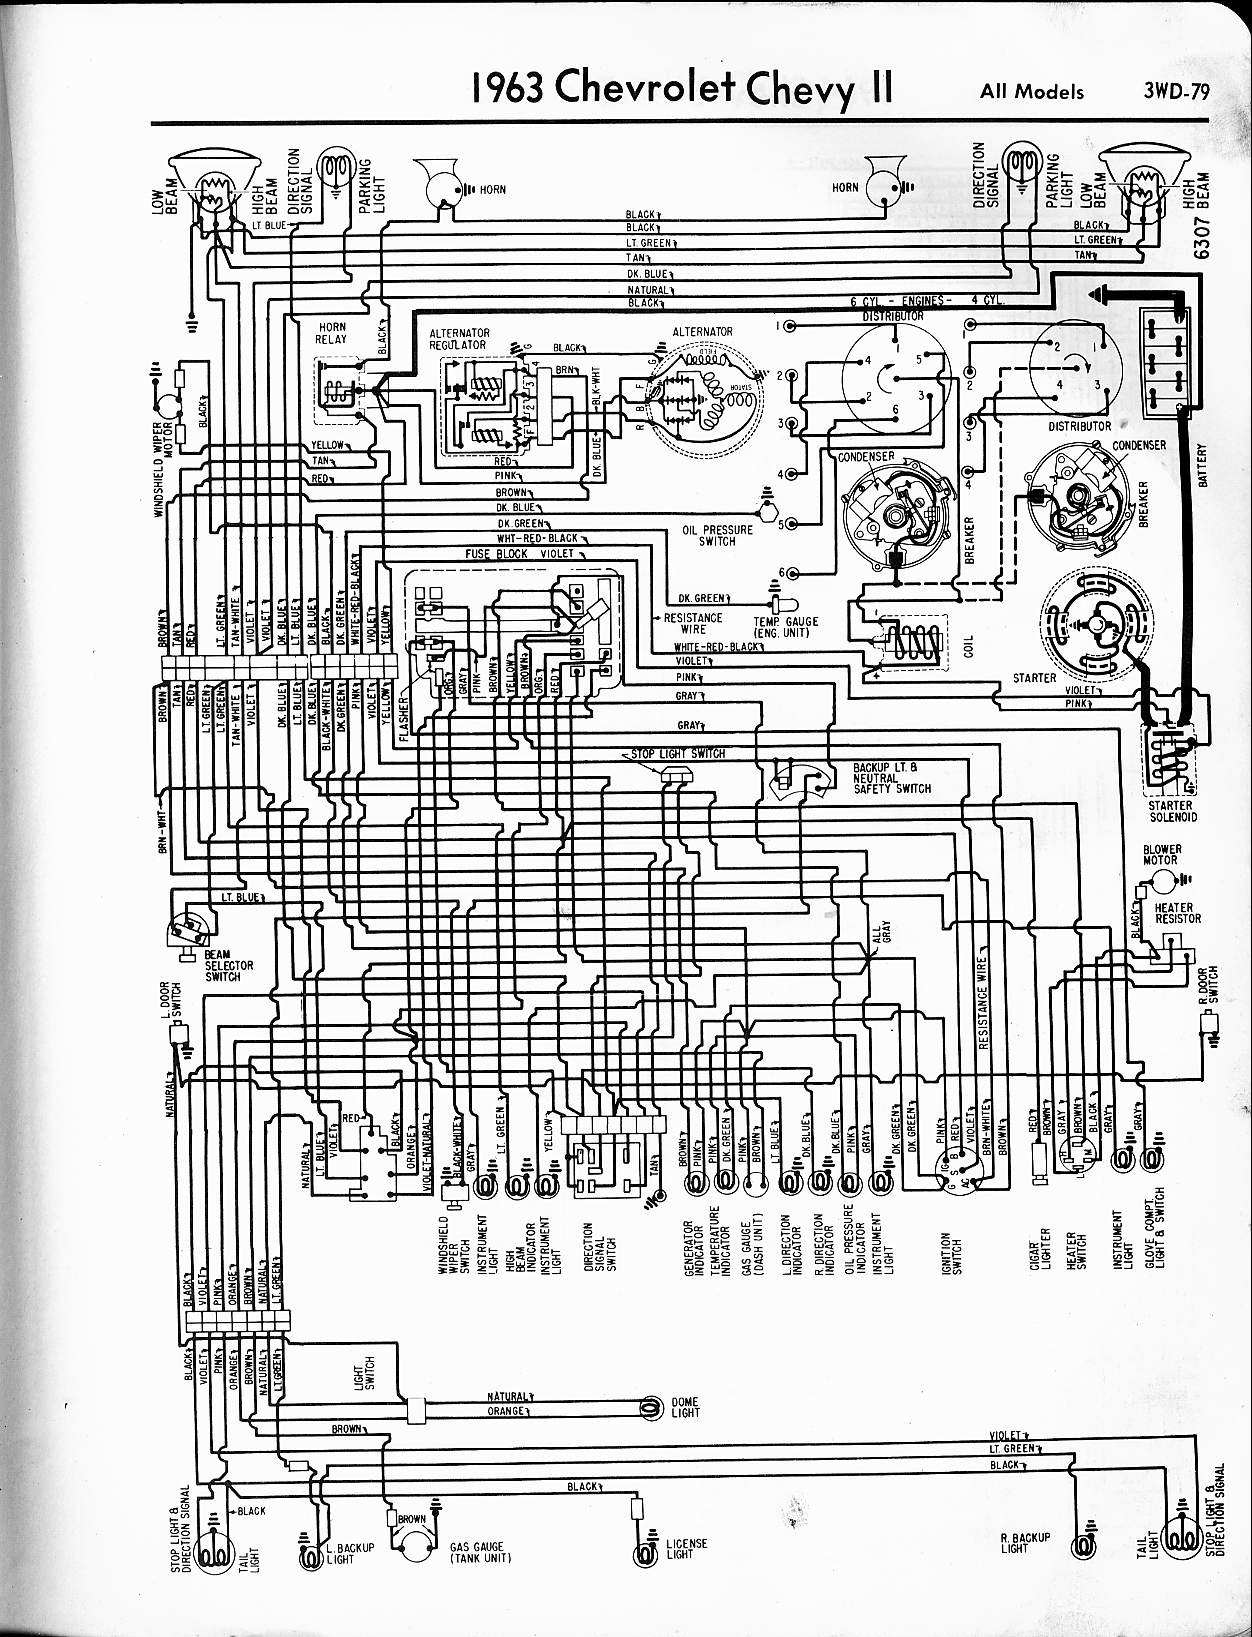 MWireChev63_3WD 079 57 65 chevy wiring diagrams 3 Wire Headlight Wiring Diagram at reclaimingppi.co